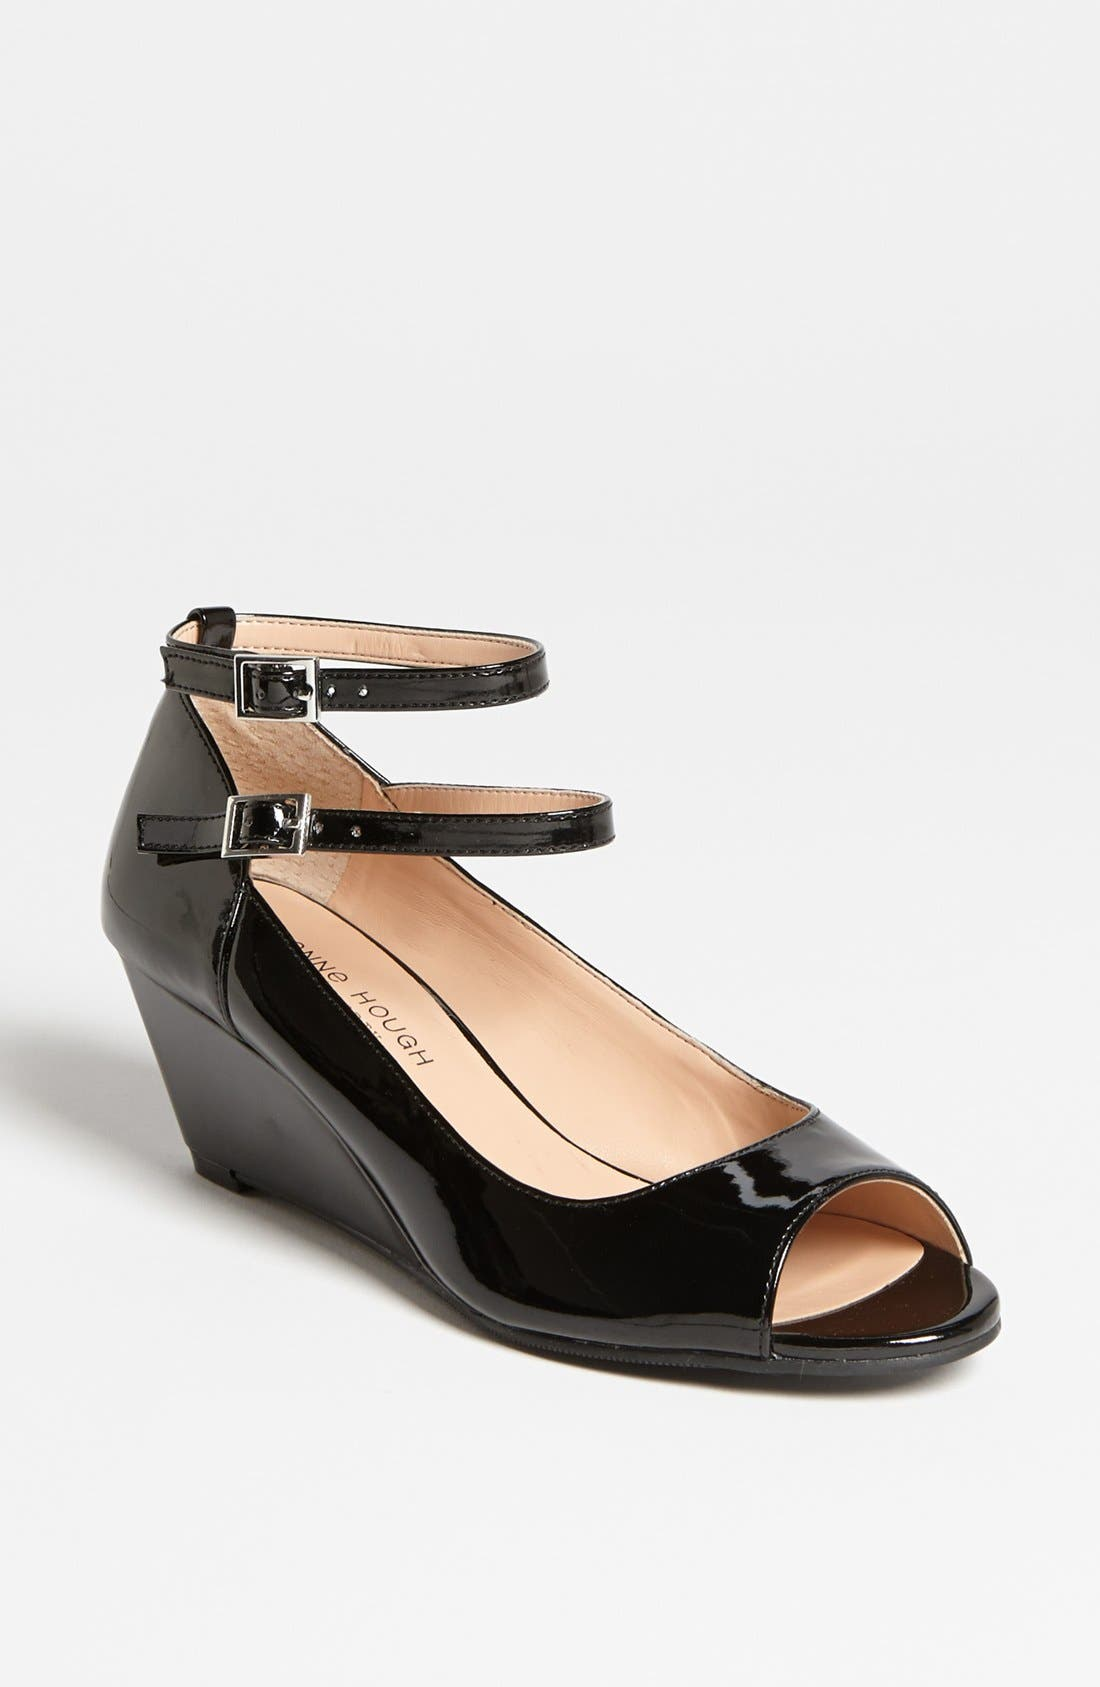 Alternate Image 1 Selected - Julianne Hough for Sole Society 'Selina' Wedge